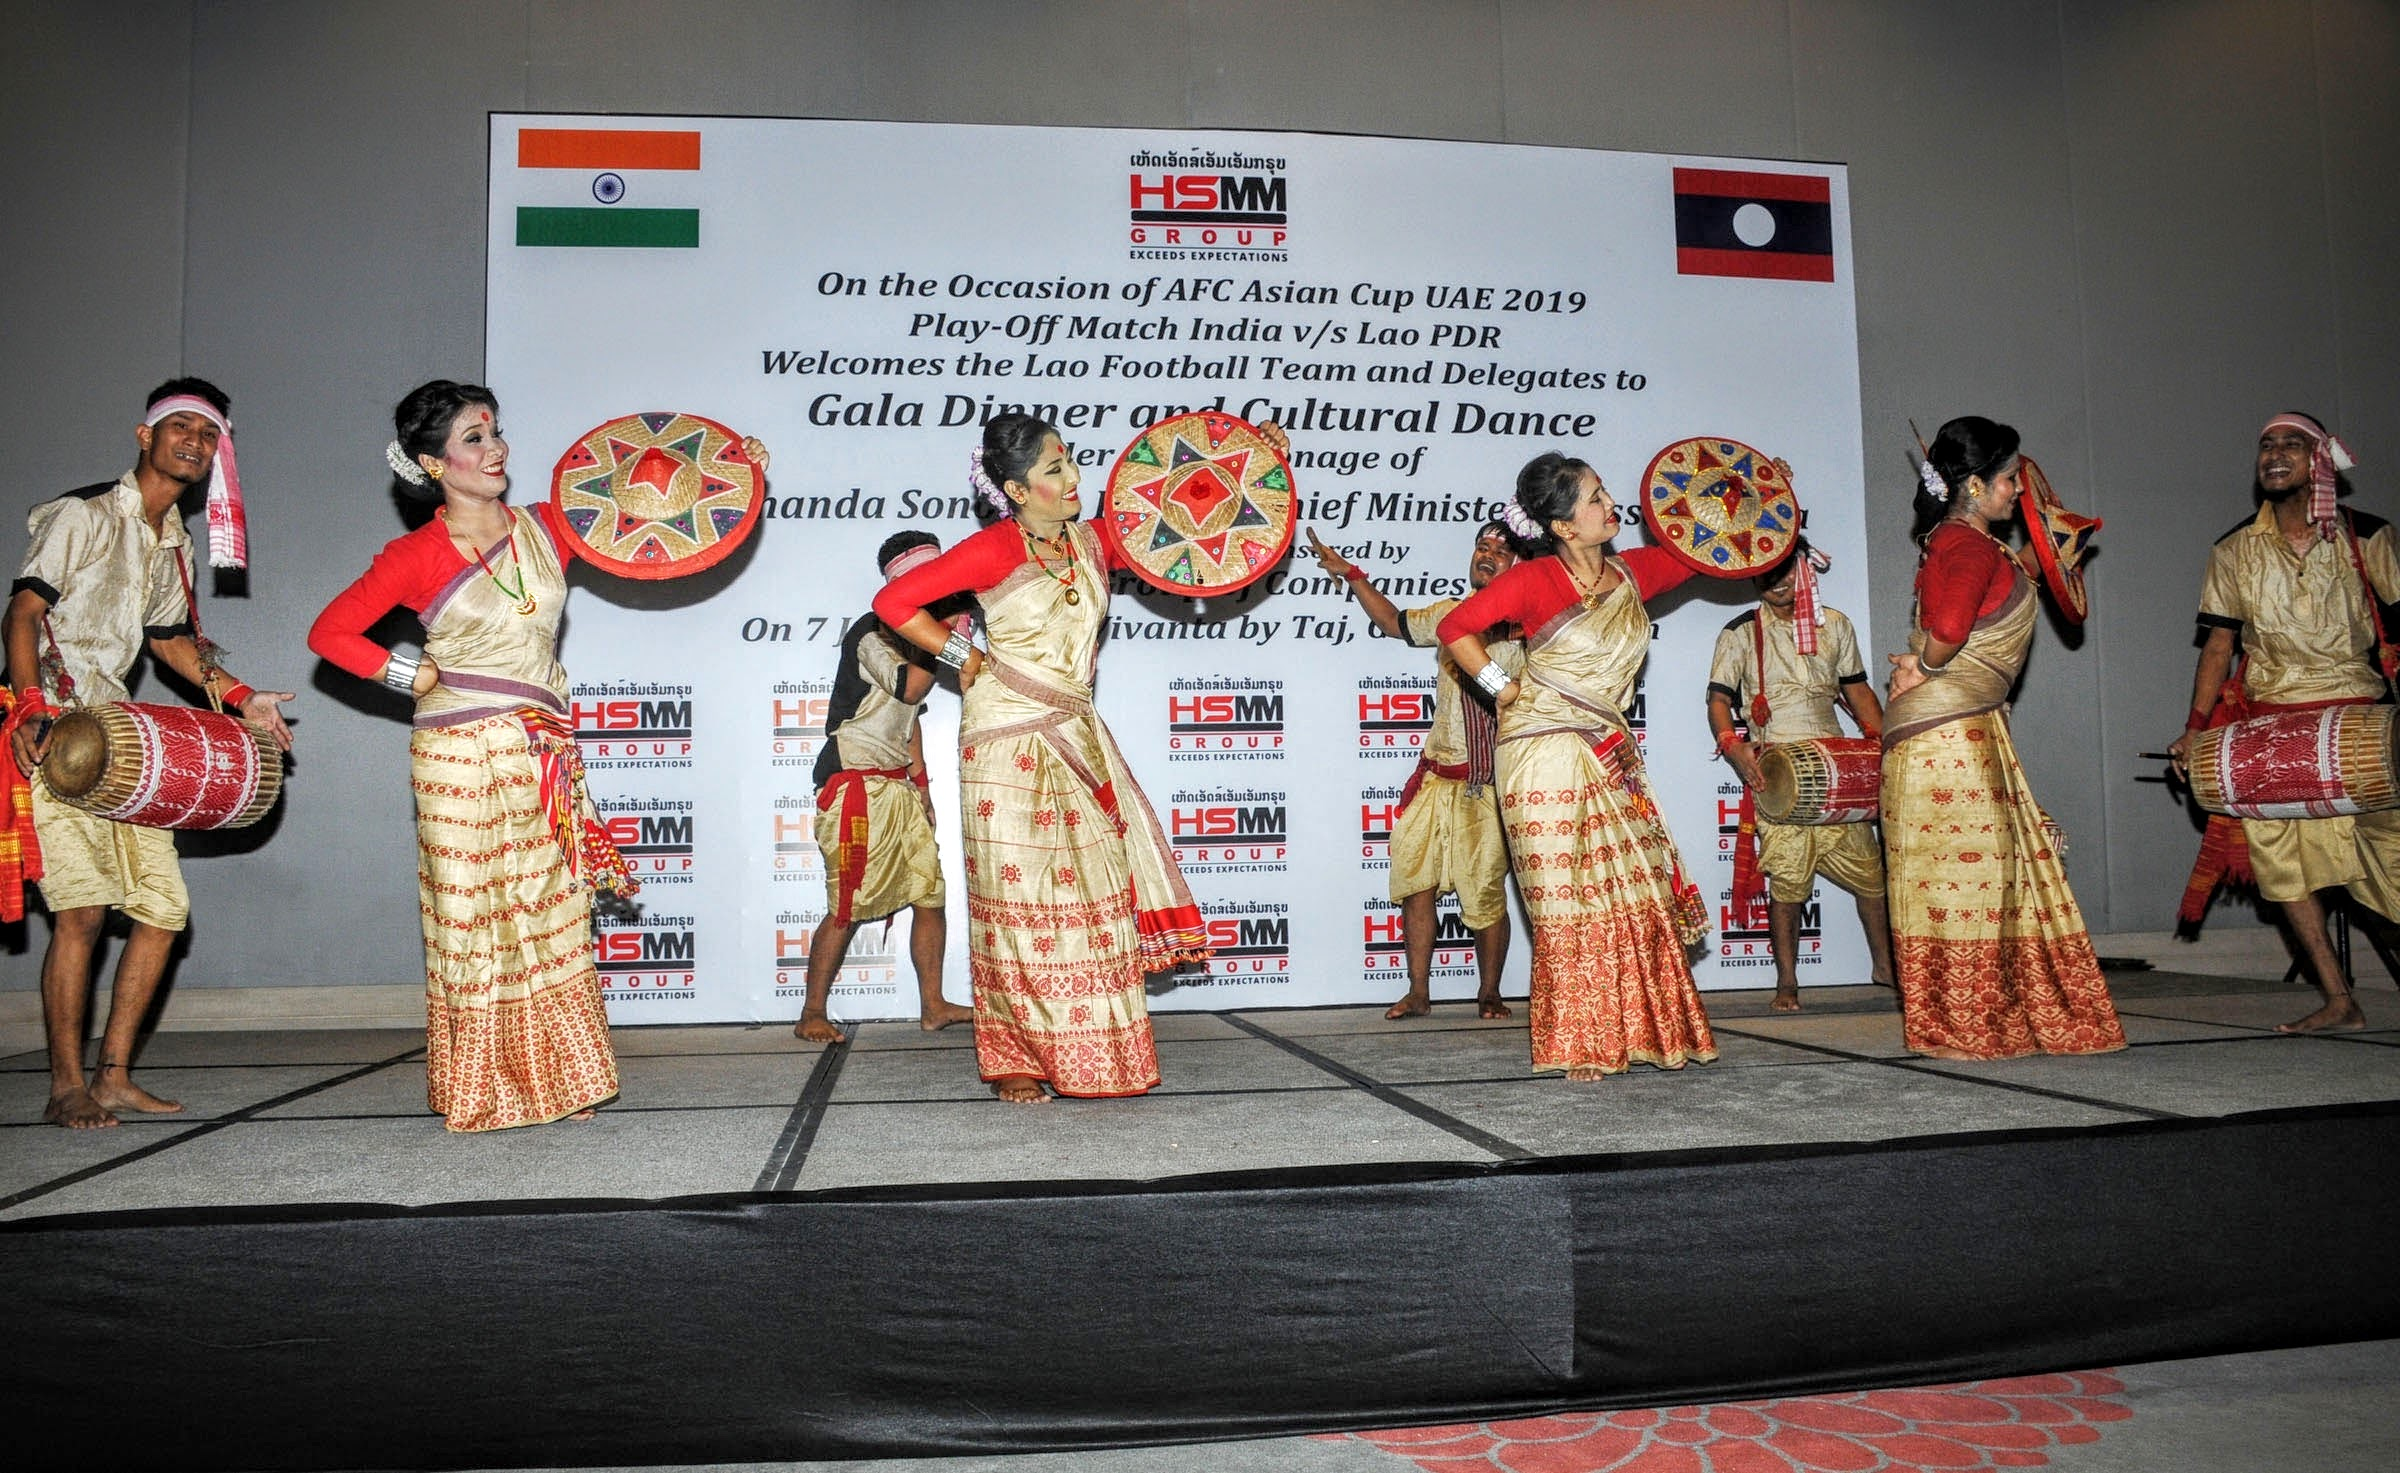 Traditional Assamese Bihu Dance performance at Gala Dinner on the occasion of AFC Asian Cup UAE 2019 Qualify Match India V/S Lao PDR and India - Lao PDR Bilateral Trade and Cultural Exchange Press Conference sponsored by HSMM Group of Companies at Vivant by Taj, Guwahati, Assam, India on 07-08 June 2016